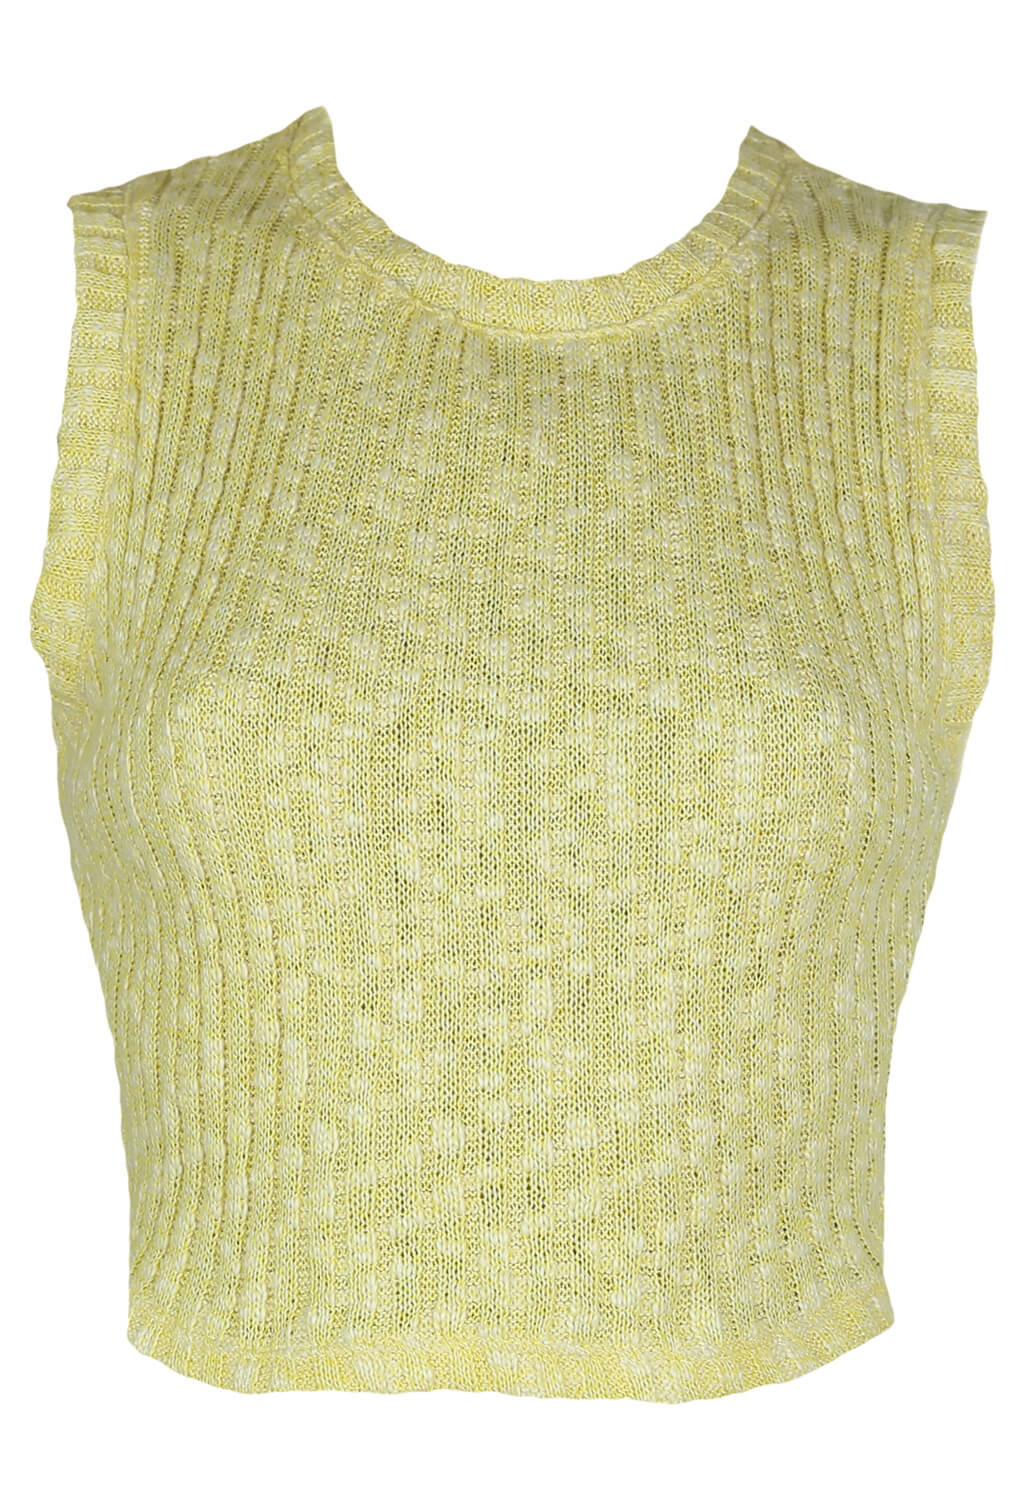 Maieu Bershka Samantha Light Yellow